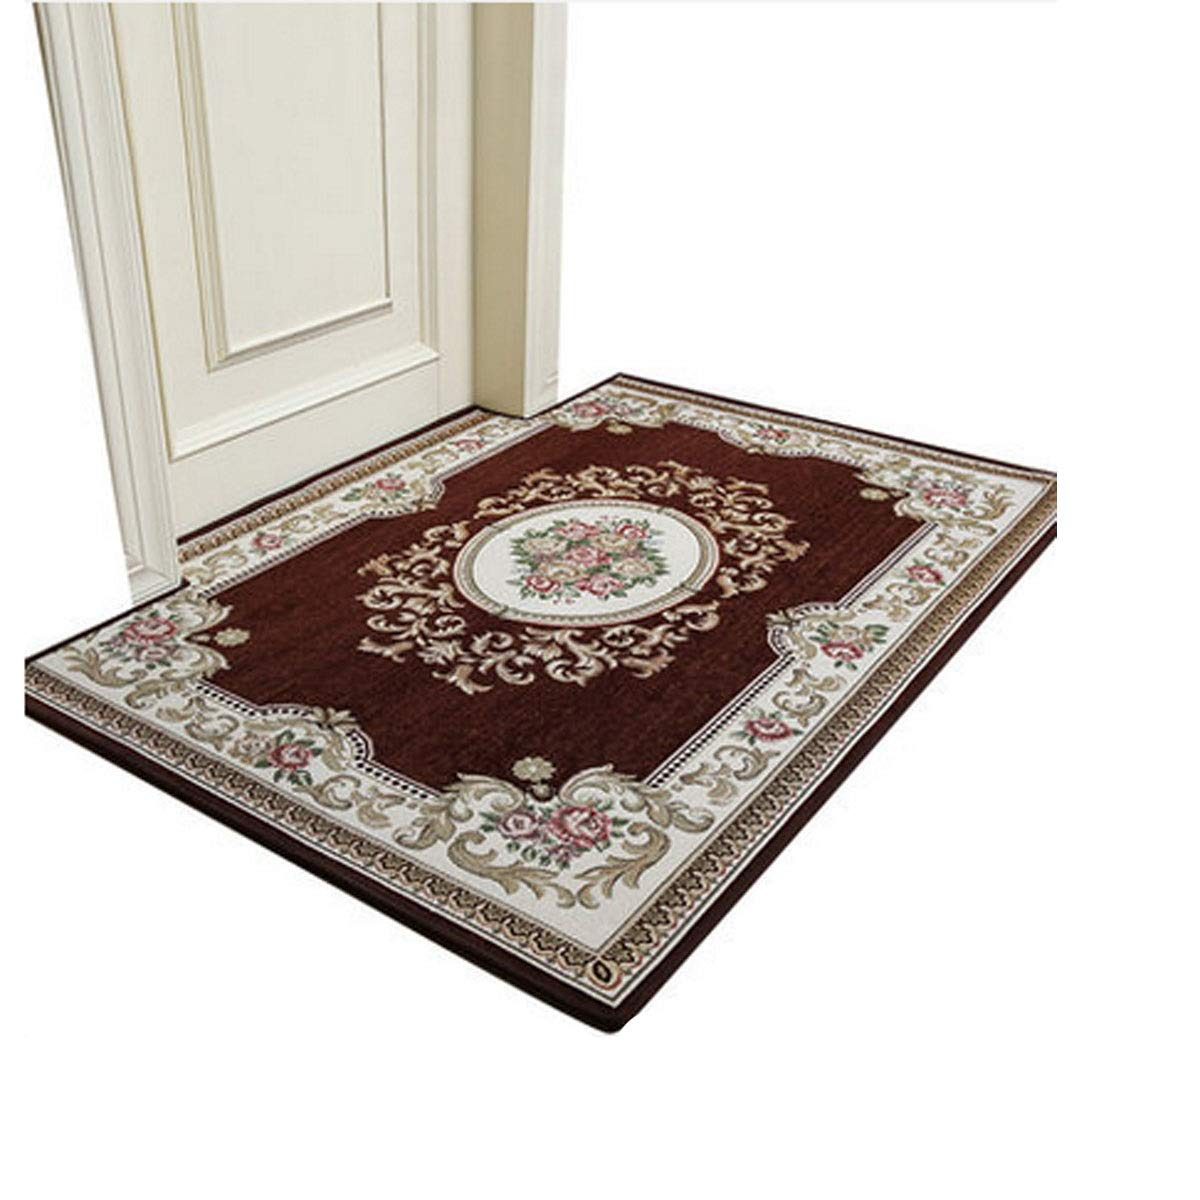 2032 inch Doormat,Suitable for Living Room Kitchen Bedroom Bathroom,Waterproof,Washable,Easy Clean,Strong Anti-Slip, Environmentally Friendly and Healthy Without Formaldehyde,32  40 inch (Size   20  32 inch)